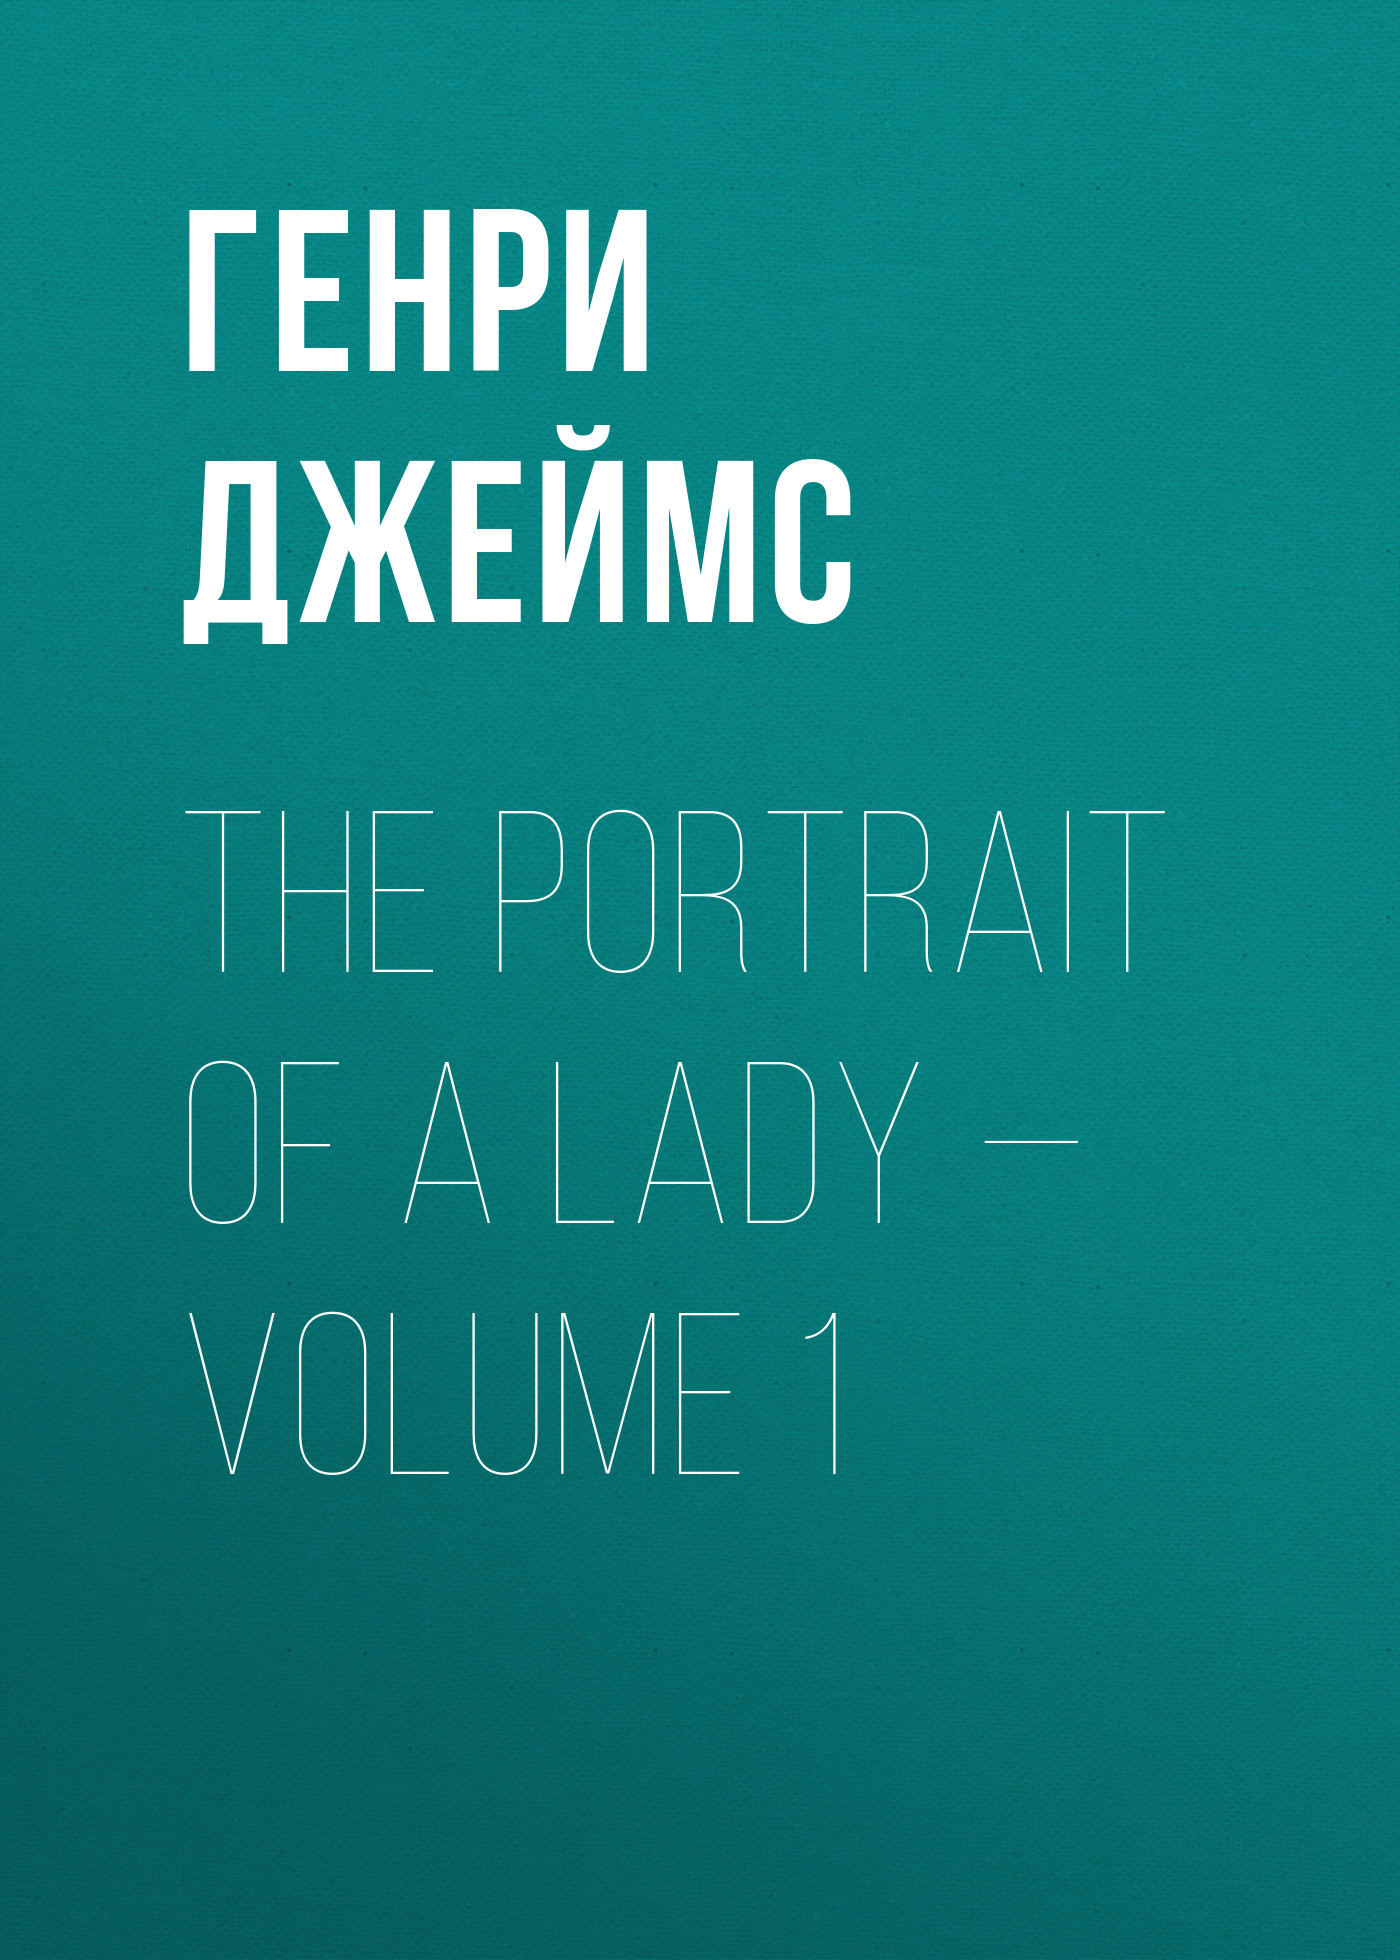 Генри Джеймс The Portrait of a Lady — Volume 1 цена 2017